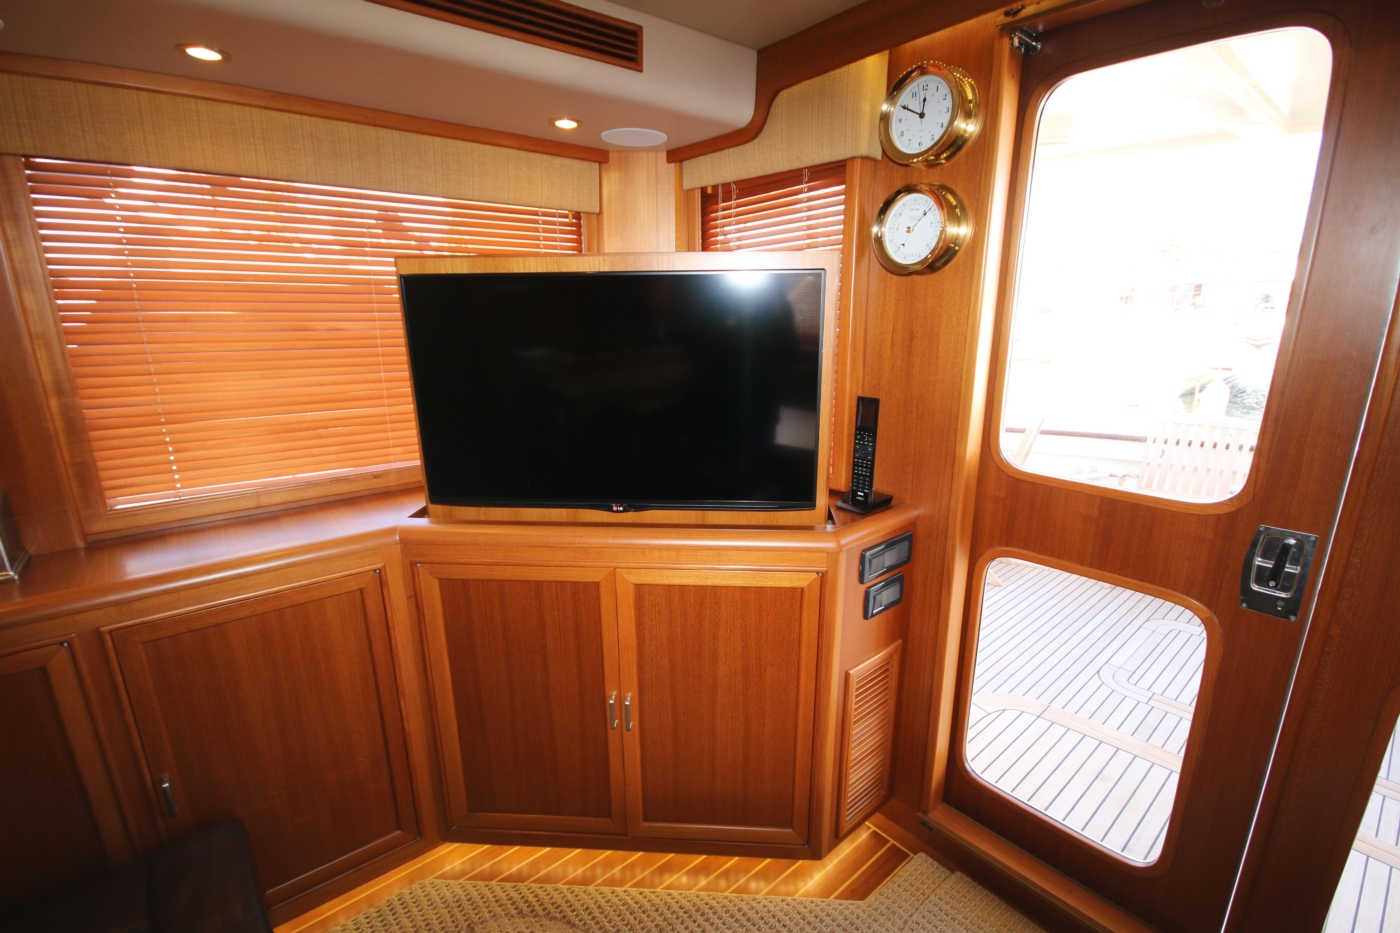 2015 Fleming 58 Pilothouse, TV in up position